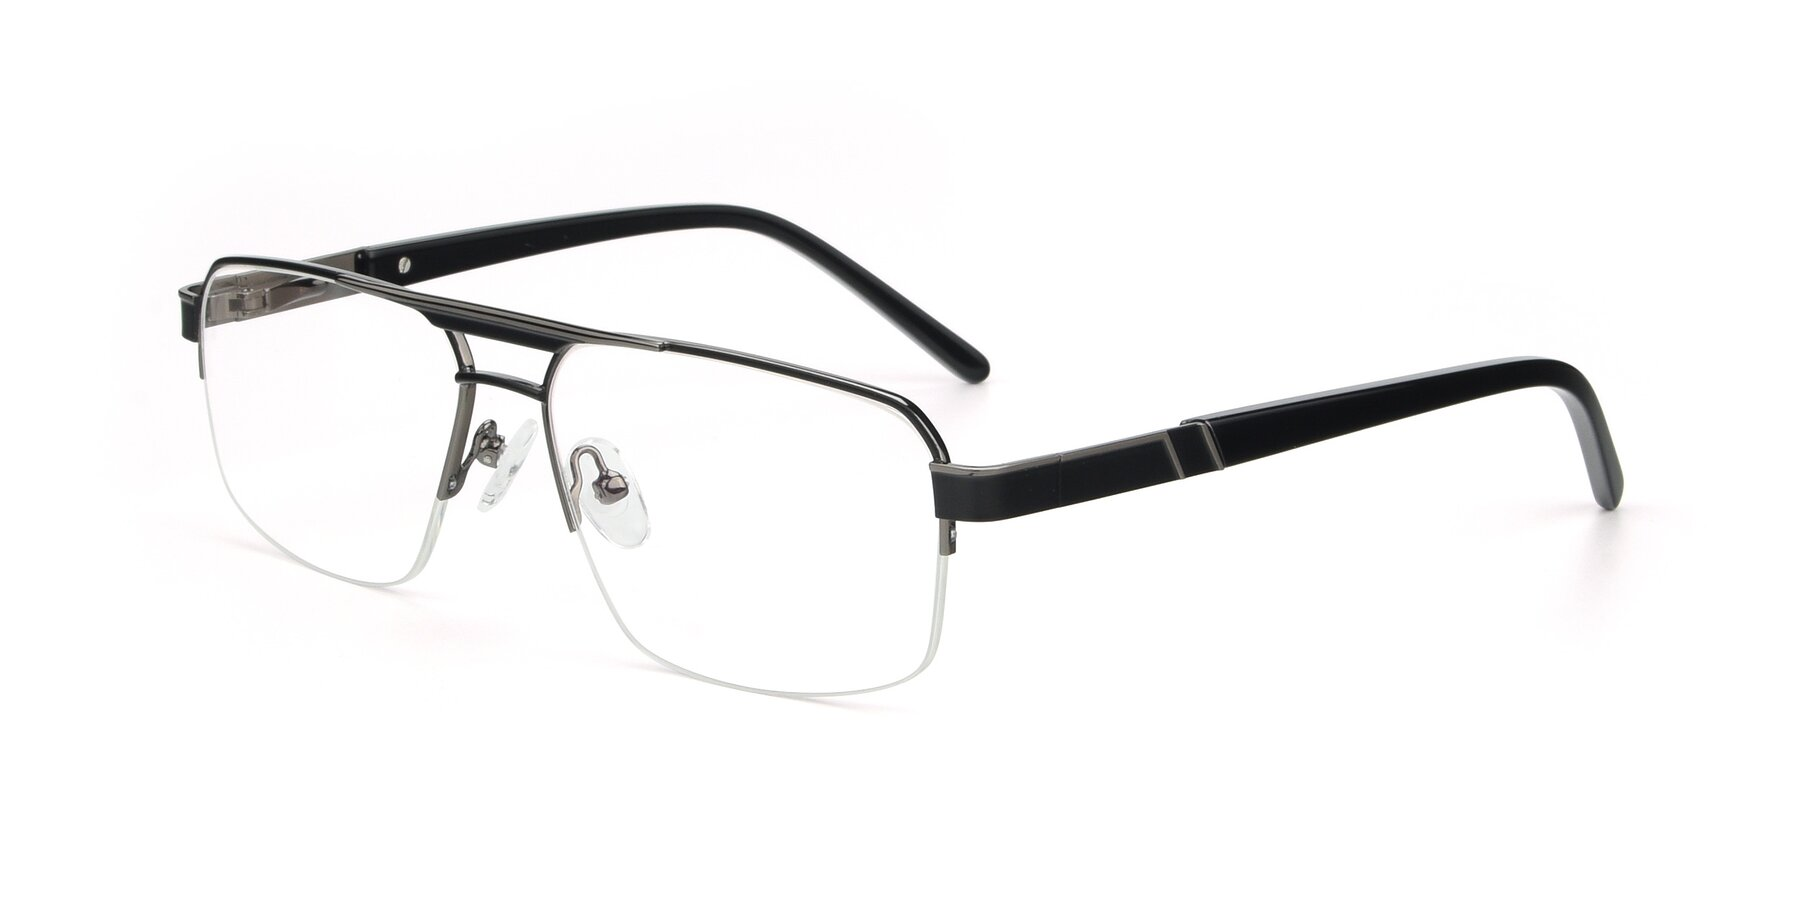 Angle of 19004 in Black-Gun with Clear Eyeglass Lenses